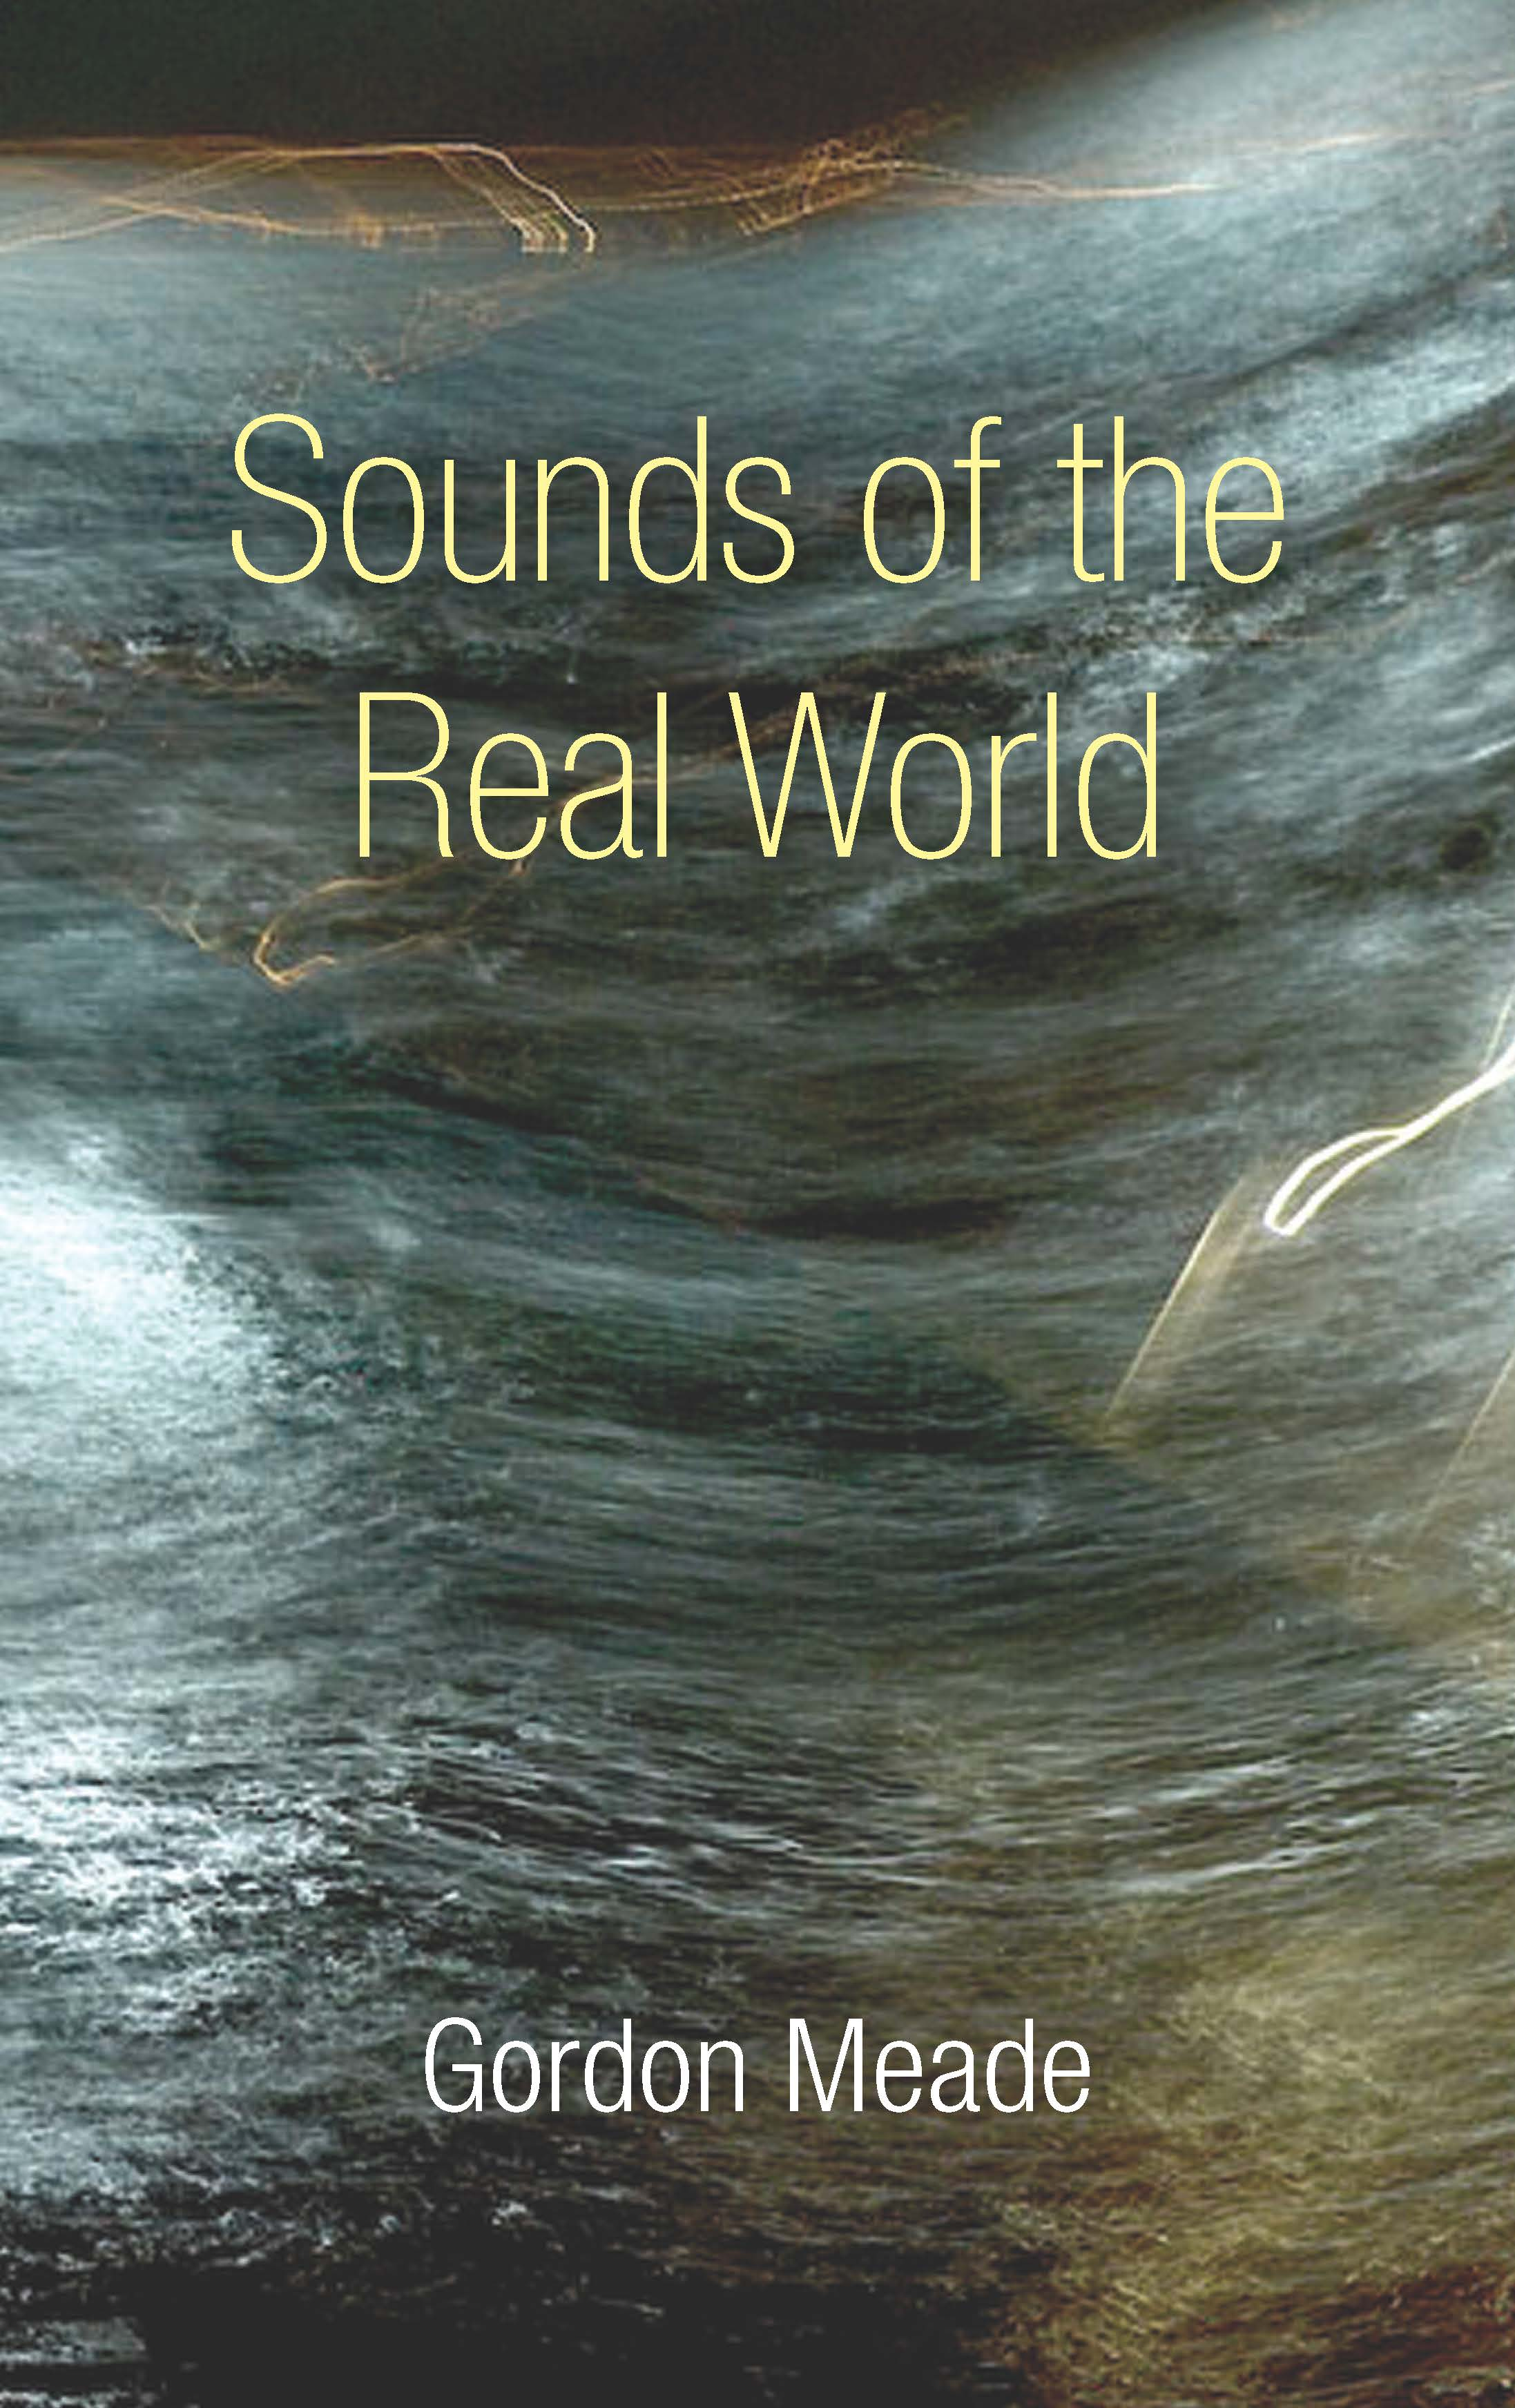 Sounds of the Real World by Gordon Meade